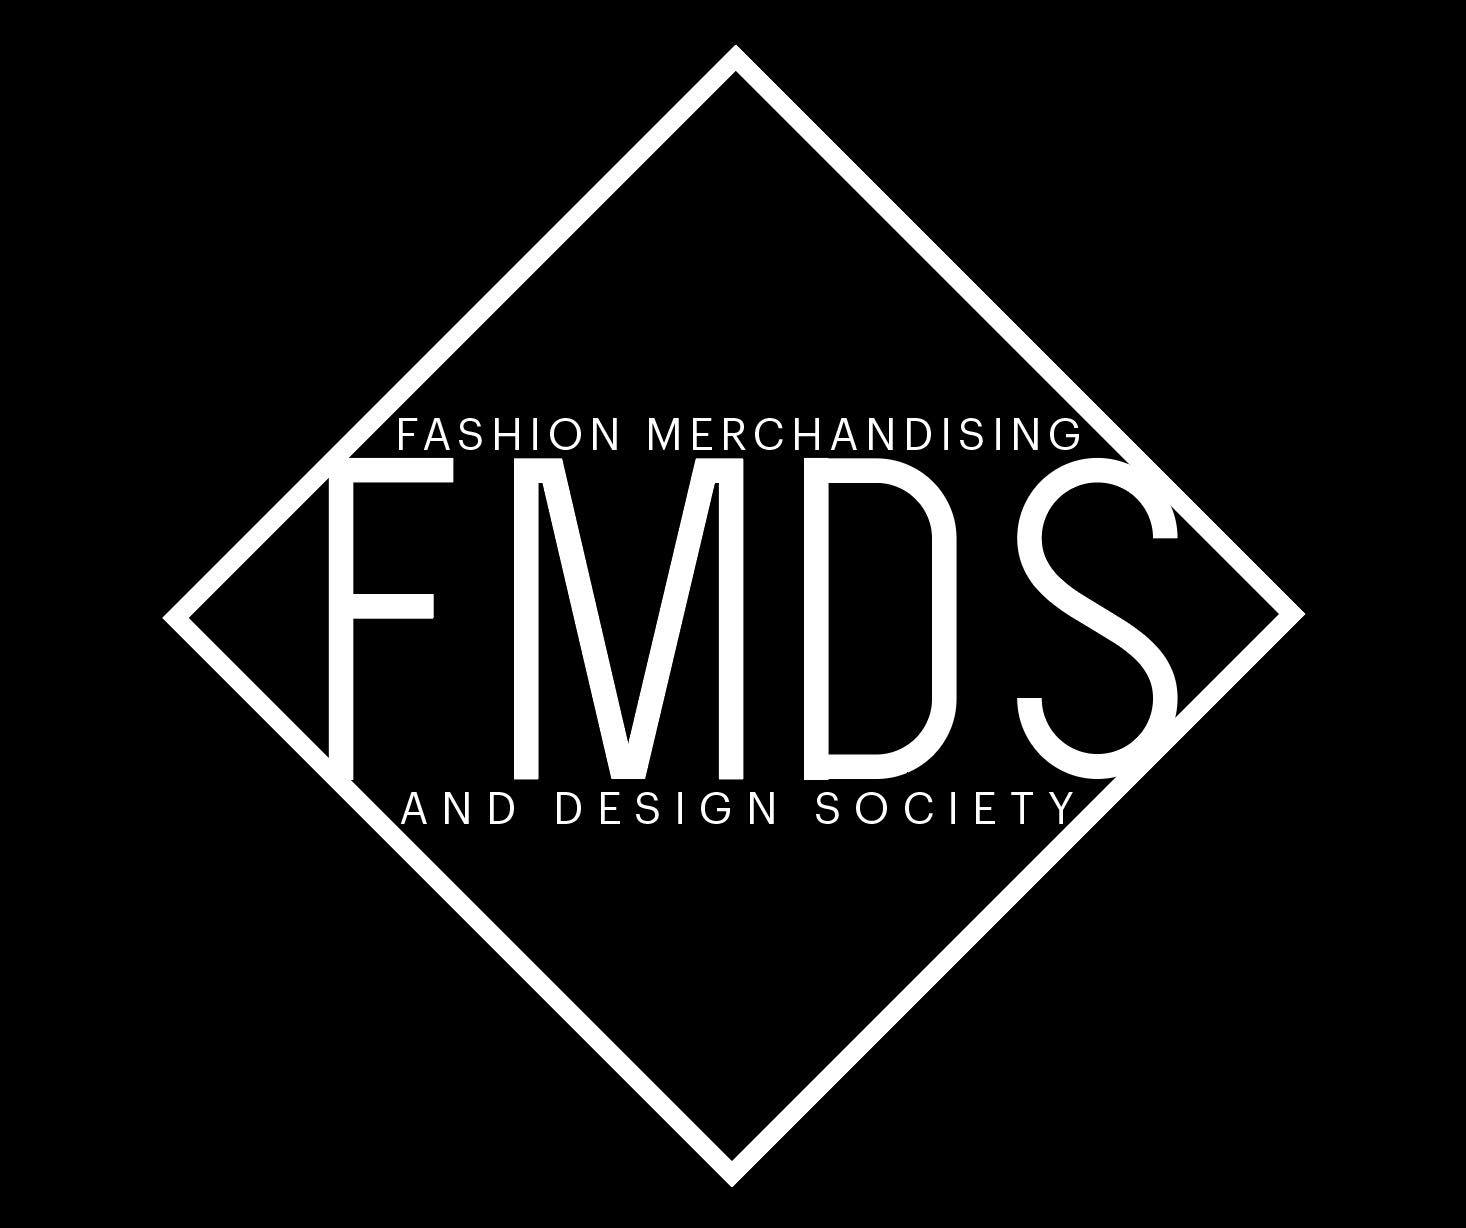 Fashion merchandising and design society 14